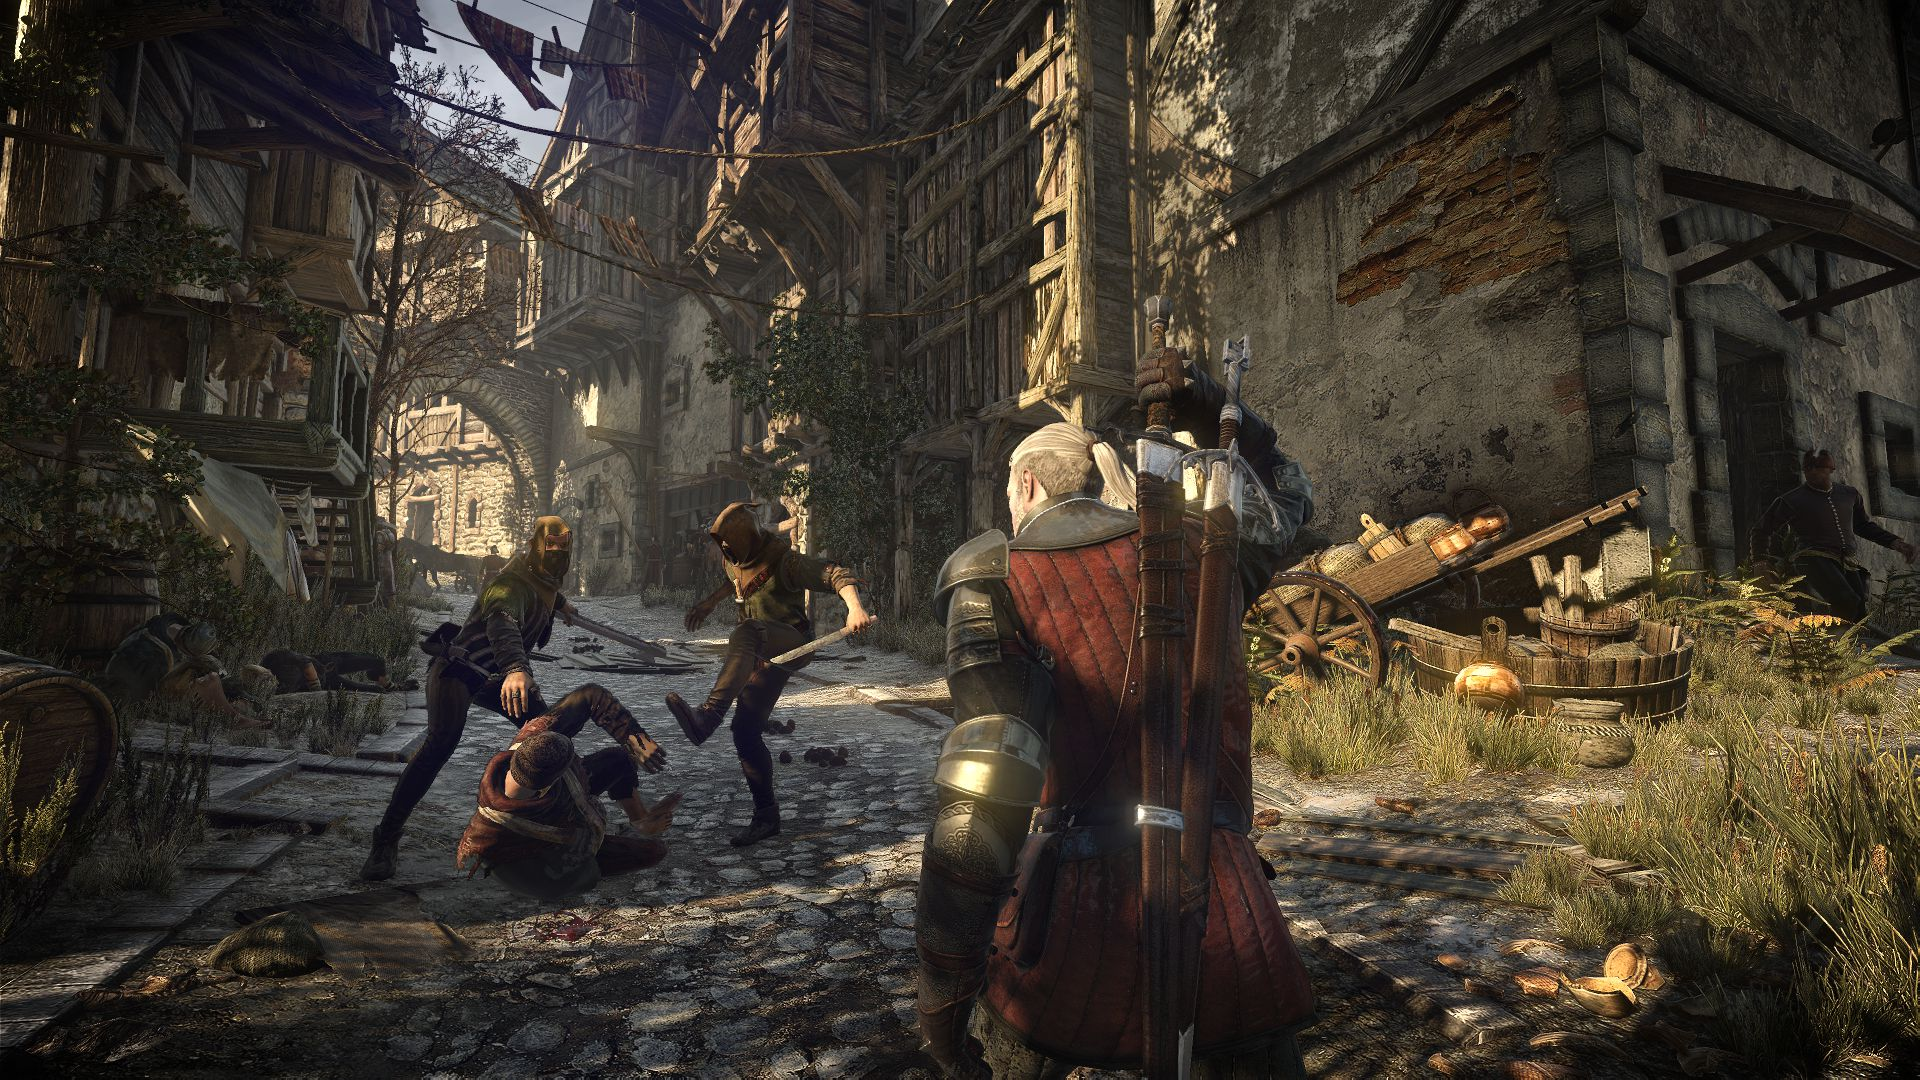 the_witcher_3_wild_hunt__you_never_know_what_waits_around_the_corner_1402422228